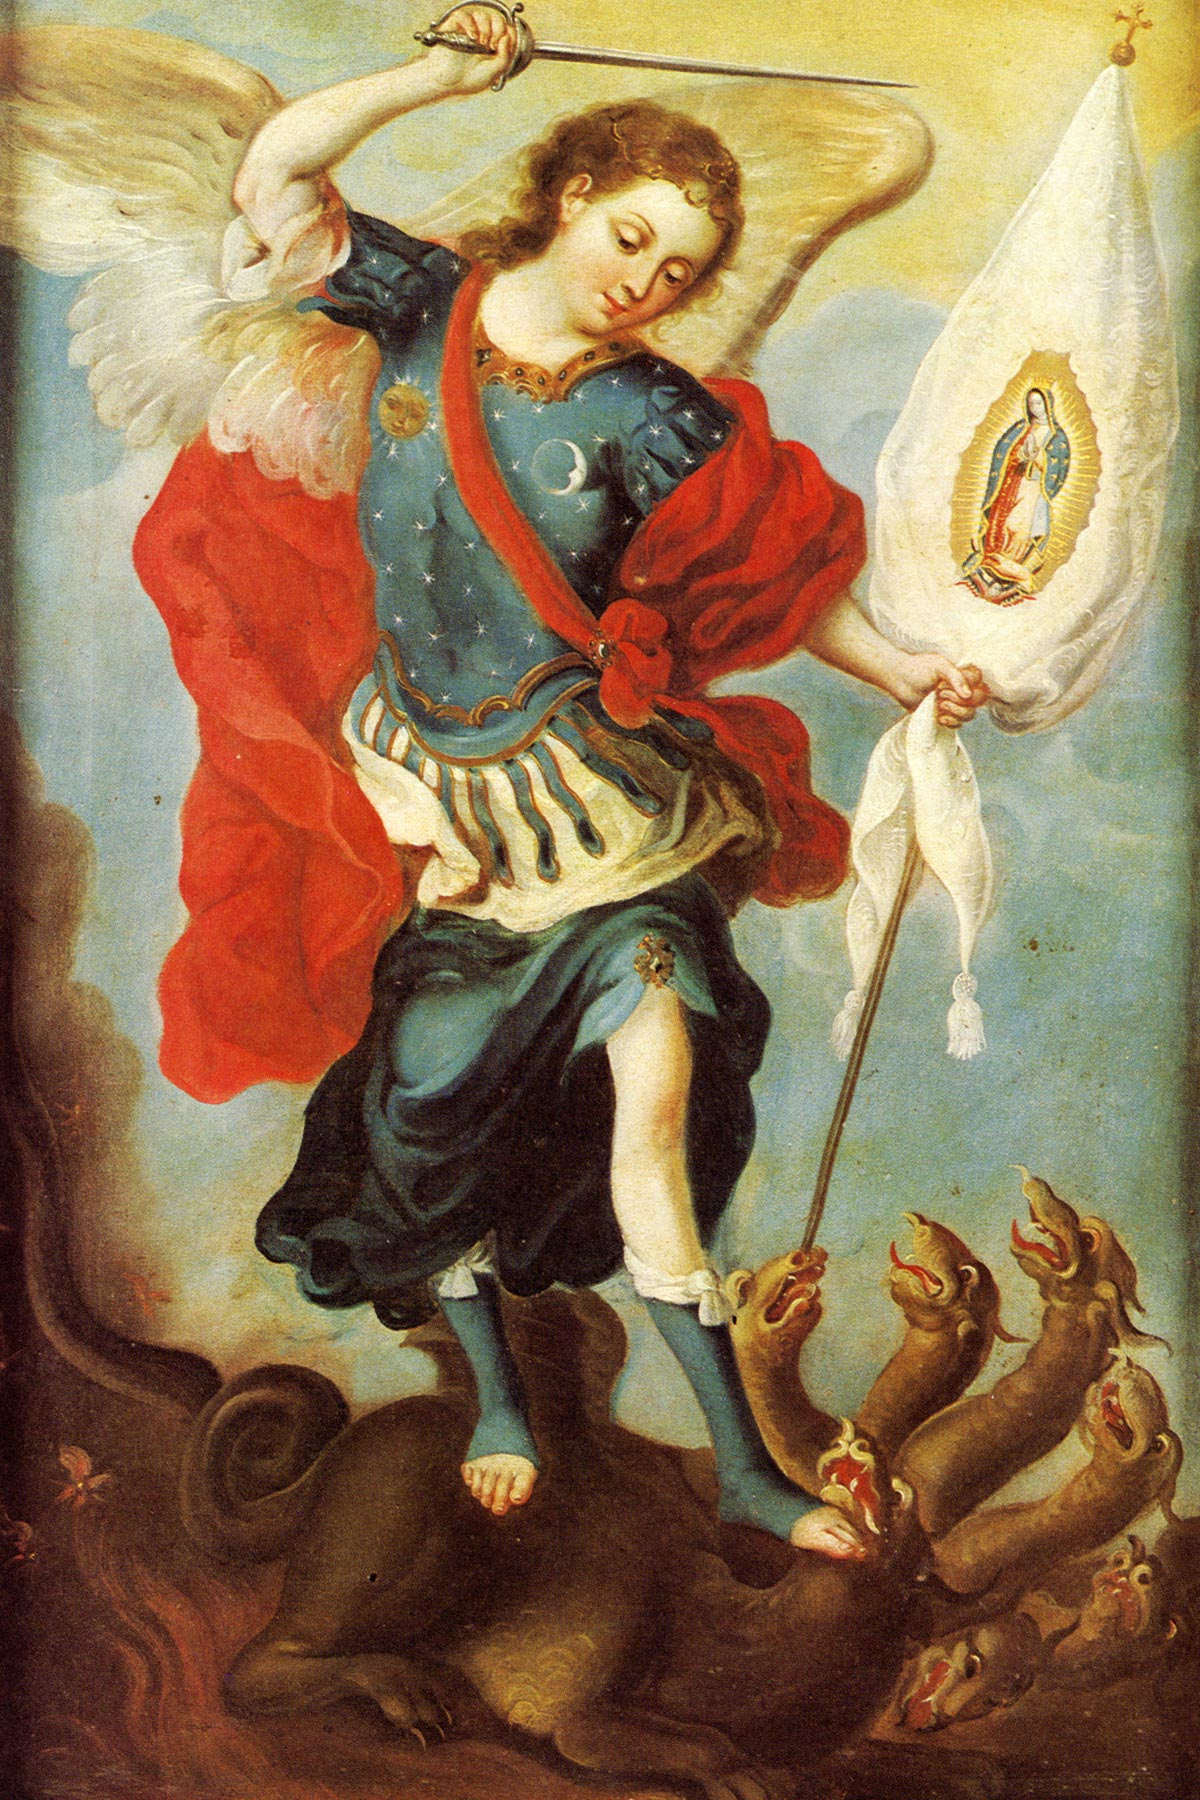 essay on st michael the archangel Prayer to saint michael the archangel st michael the archangel, defend us in battle be our defense against the wickedness and snares of the devil.